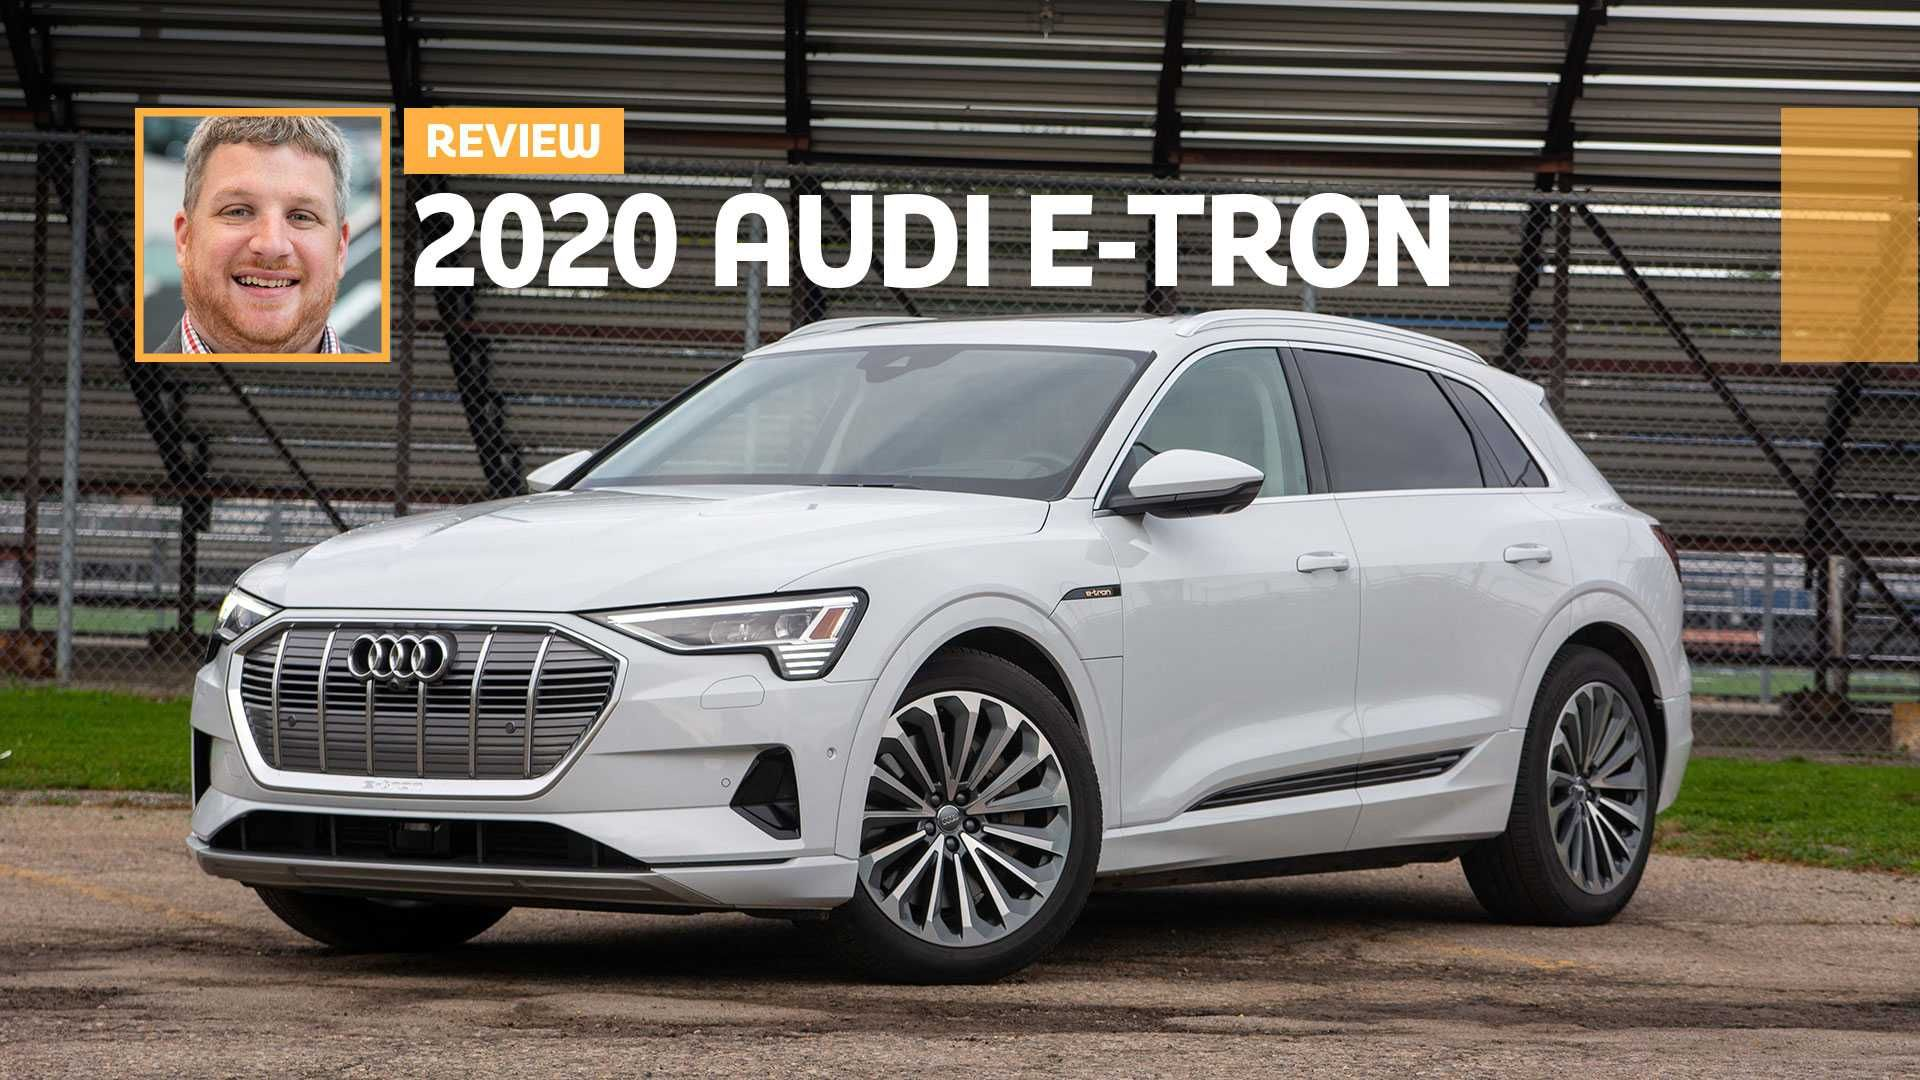 Review 2020 Audi A3 Sportback E Tron And Images Feels Free To Follow Us Di 2020